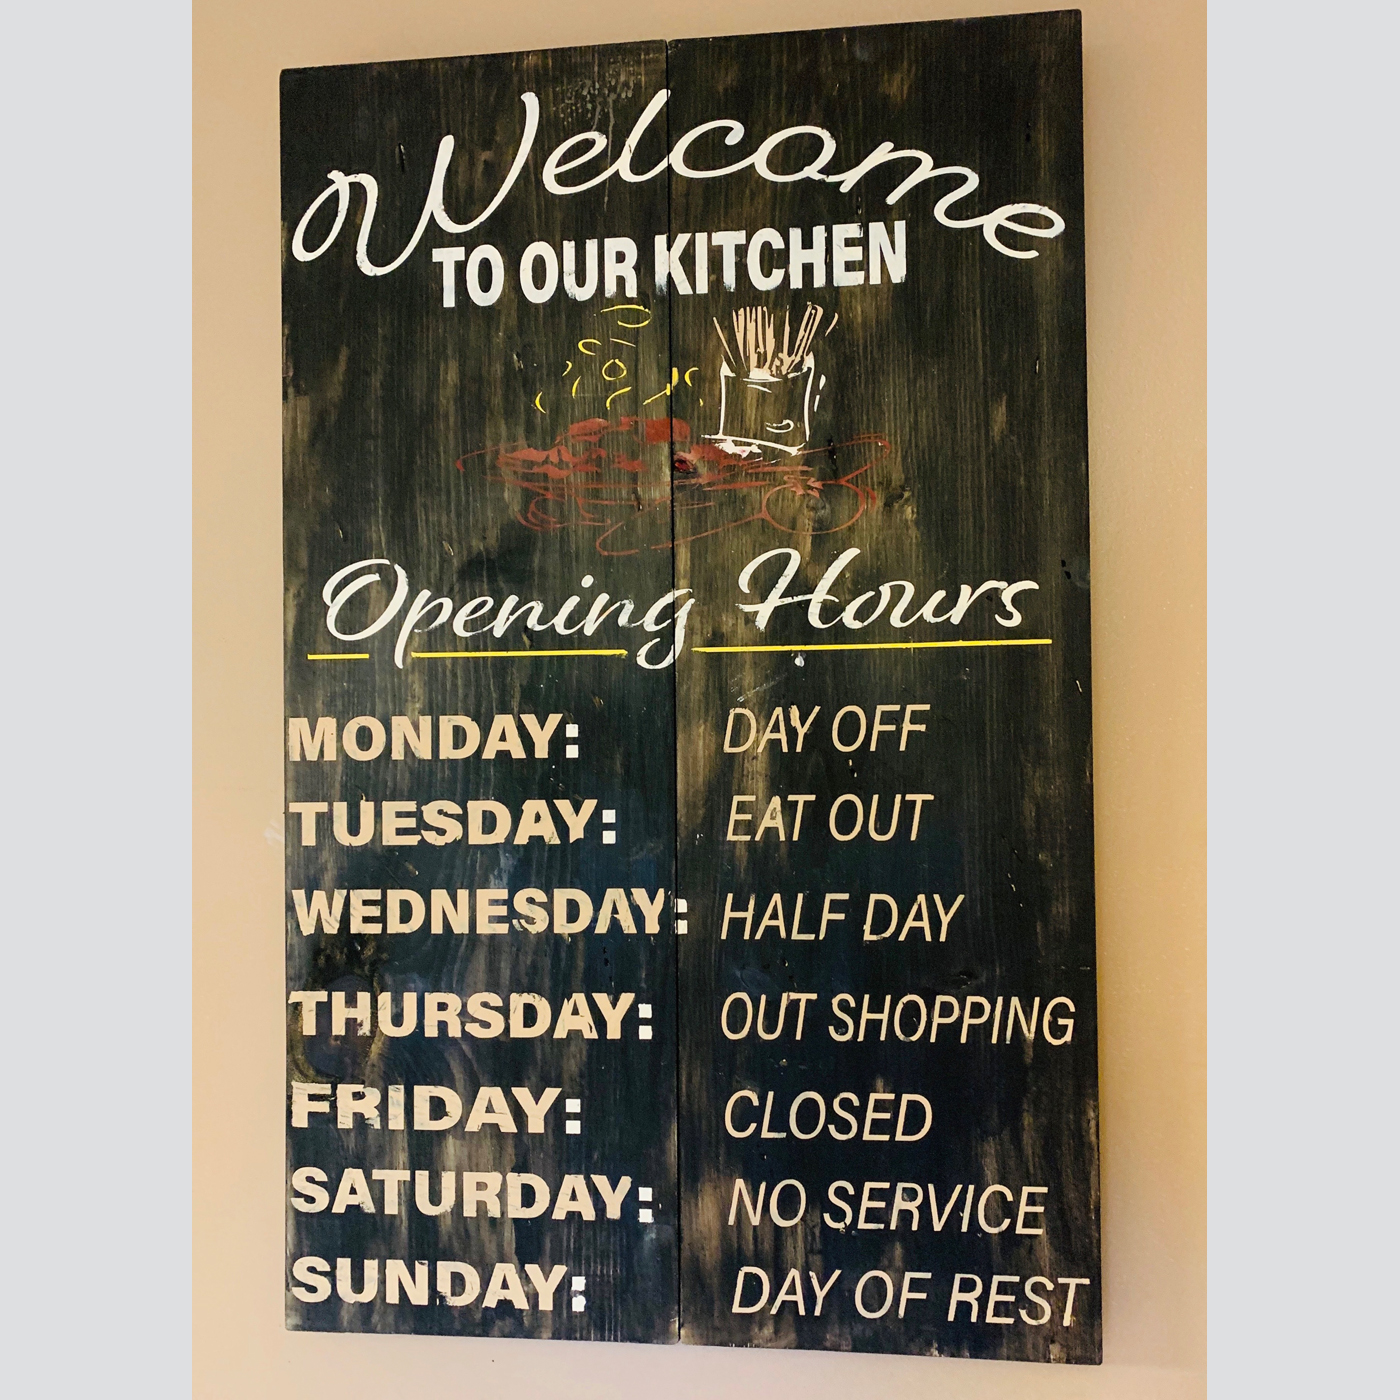 Welcome to our Kitchen Menu DIY Wood Sign Project